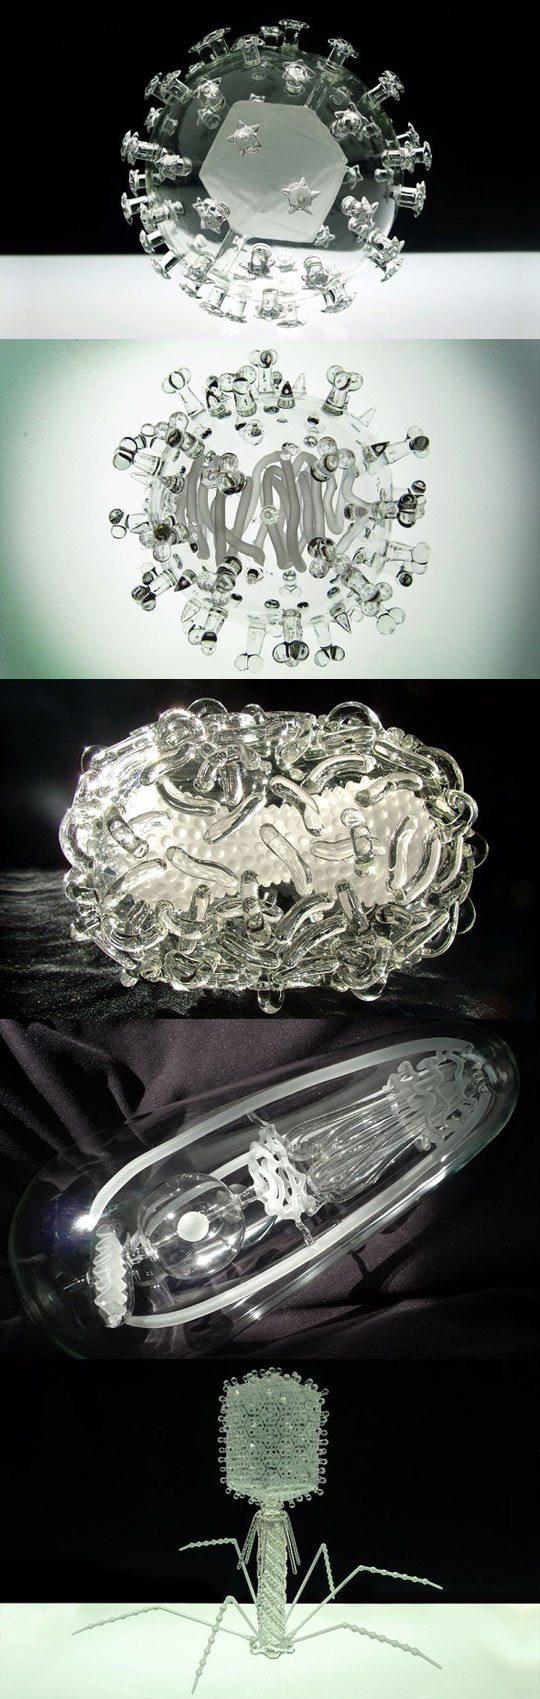 funny-sculpture-glass-virus-HIV-Flu-bacteria